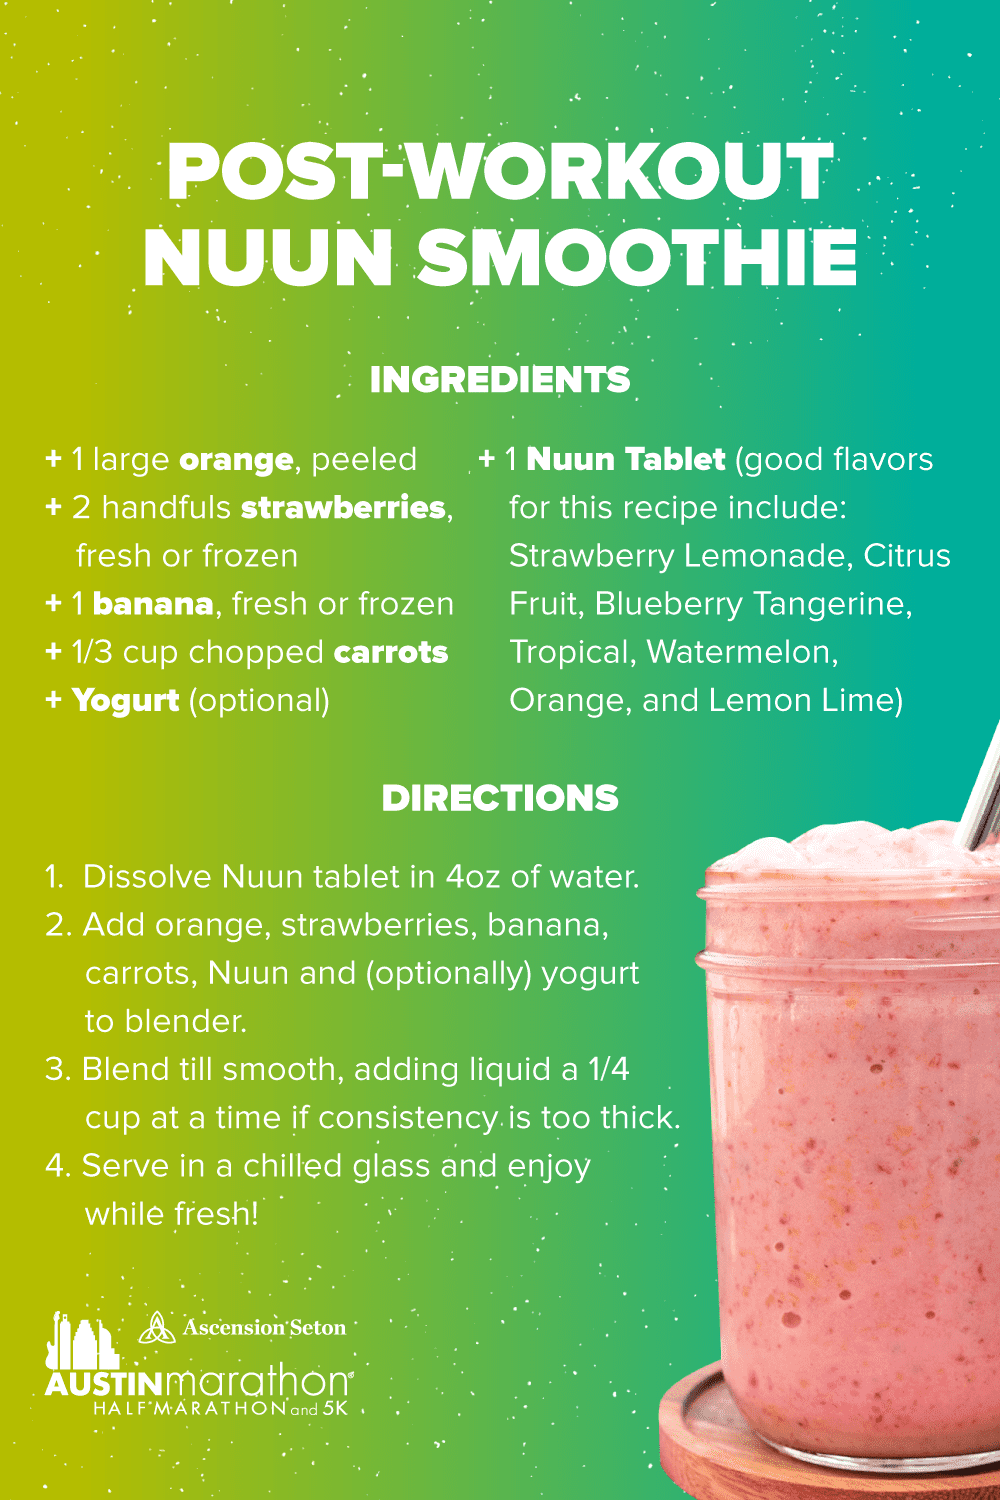 Boost your hydration and replace electrolytes post run with this Nuun smooth recipe. Ingredients/supplies - 1 large orange, 2 handfuls of strawberries, 1 banana, one third cup chopped carrots, yogurt (optional), one Nuun tablet. Directions - 1. Dissolve Nuun tablet in 4 ounces of water. 2. Add orange, strawberries, banana, carrots, Nuun, and yogurt (optional) to blender. 3. Blend until smooth. 4. Serve in chilled glass and enjoy!